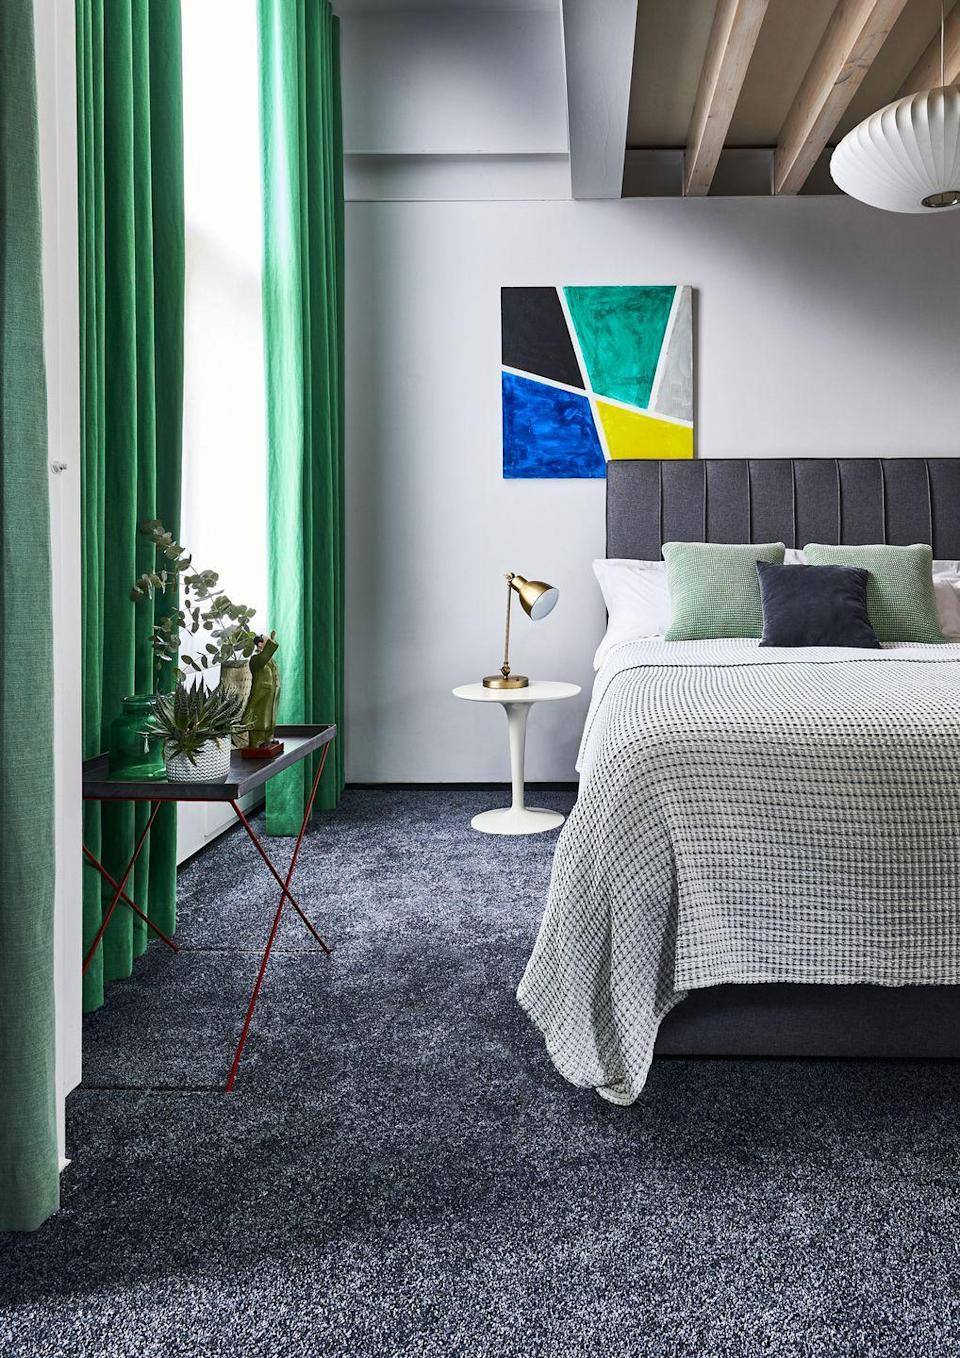 """<p>Grey is a bit of a gift when it comes to colour schemes because it goes with just about anything. A rich, graphite grey tends to make bright colours even more vivid. It is a useful tool to wake up a room by highlighting bold features – like these dramatic green curtains.<br></p><p>Pictured: <a href=""""https://www.carpetright.co.uk/carpets/super-sublime-saxony-carpet/"""" rel=""""nofollow noopener"""" target=""""_blank"""" data-ylk=""""slk:House Beautiful Super Sublime Carpet at Carpetright"""" class=""""link rapid-noclick-resp"""">House Beautiful Super Sublime Carpet at Carpetright</a></p>"""